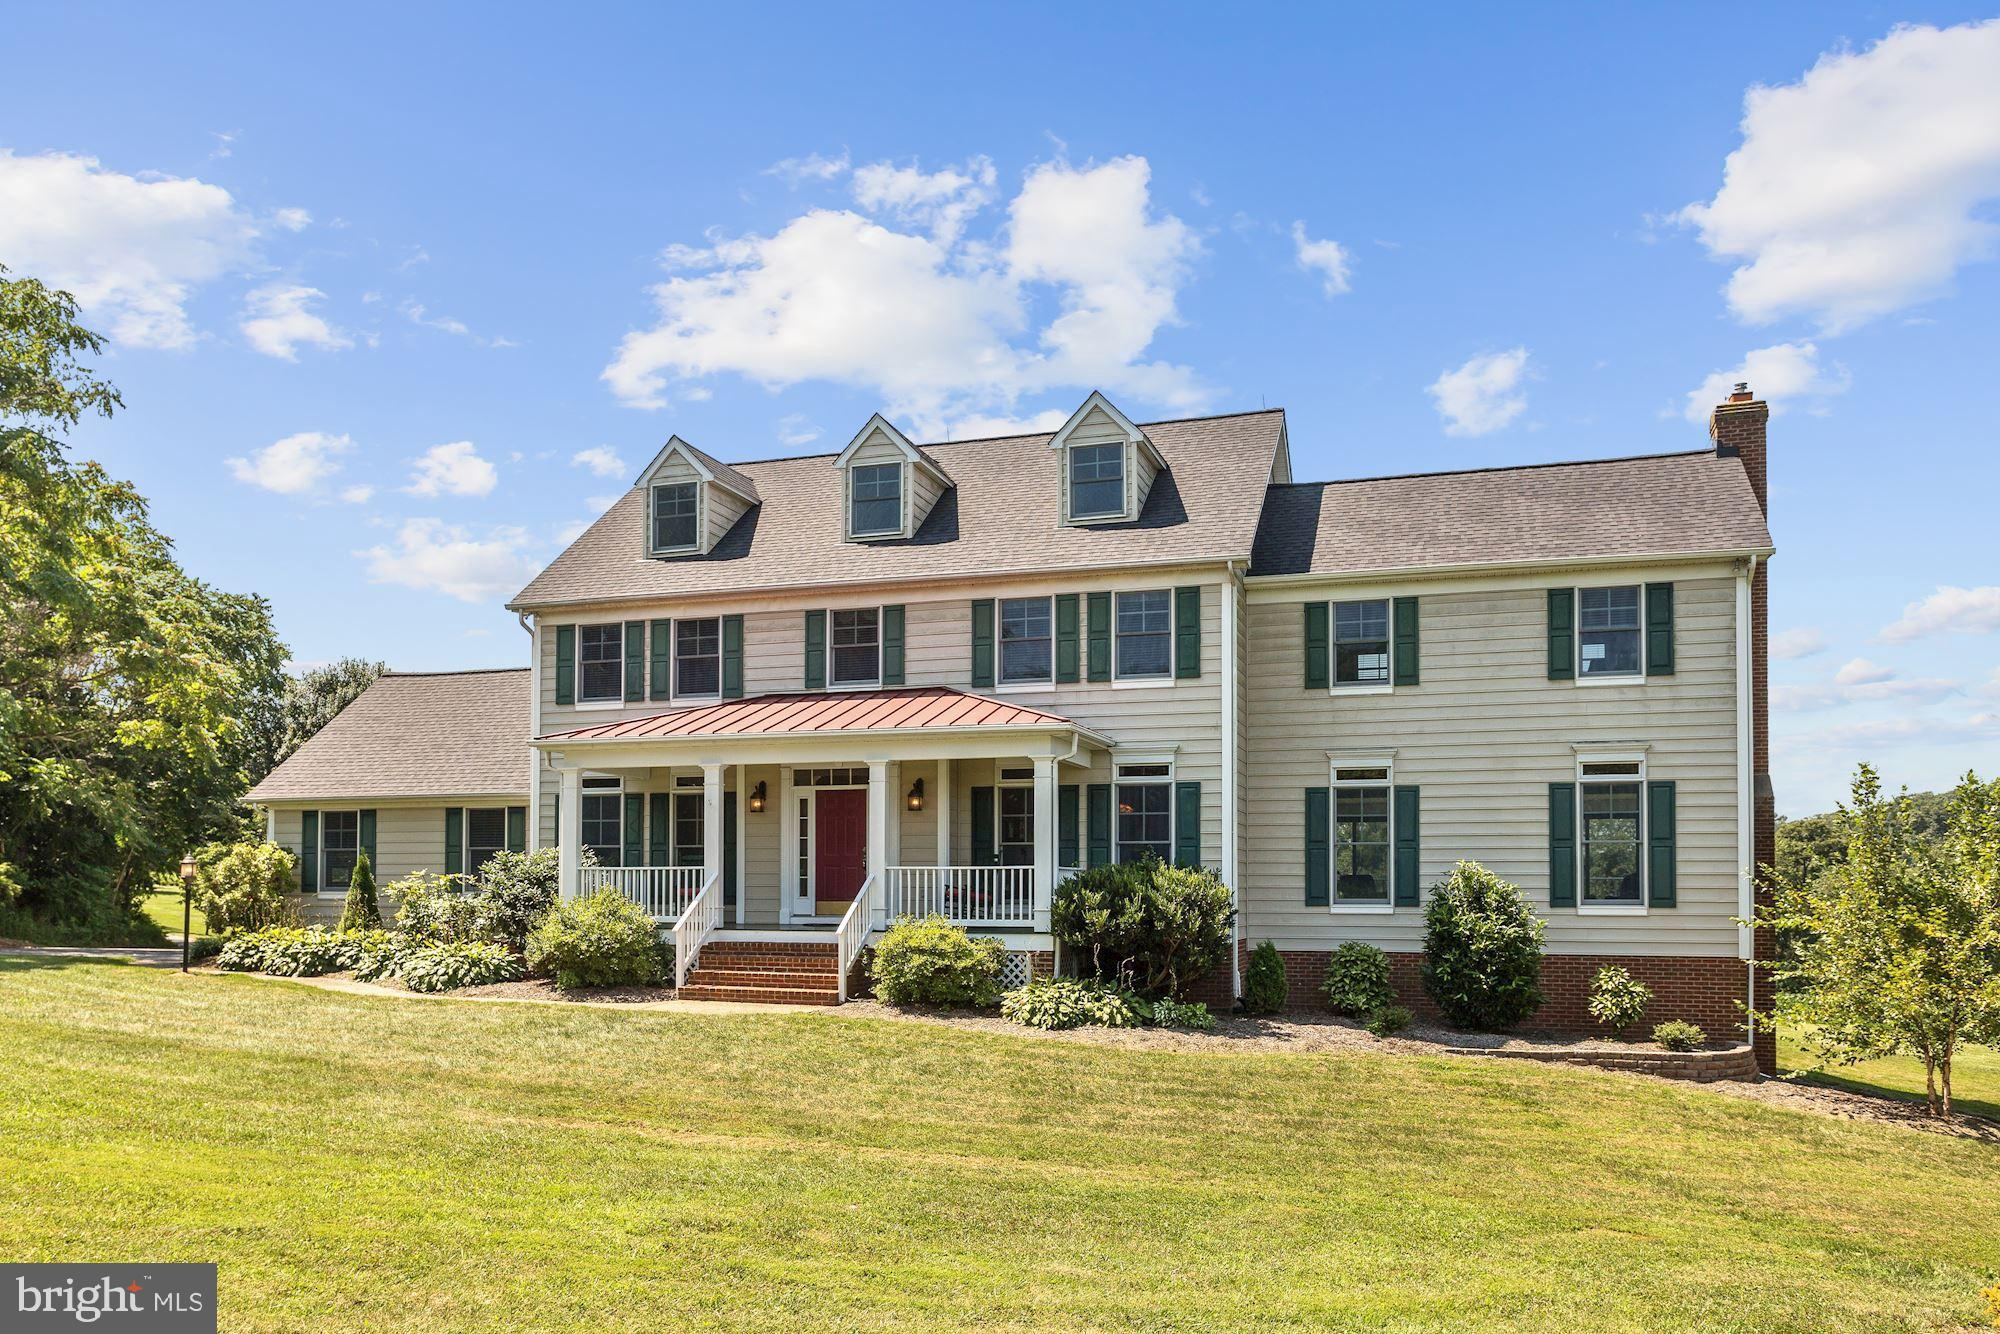 15495 CARRS MILL ROAD SW, WOODBINE, MD 21797